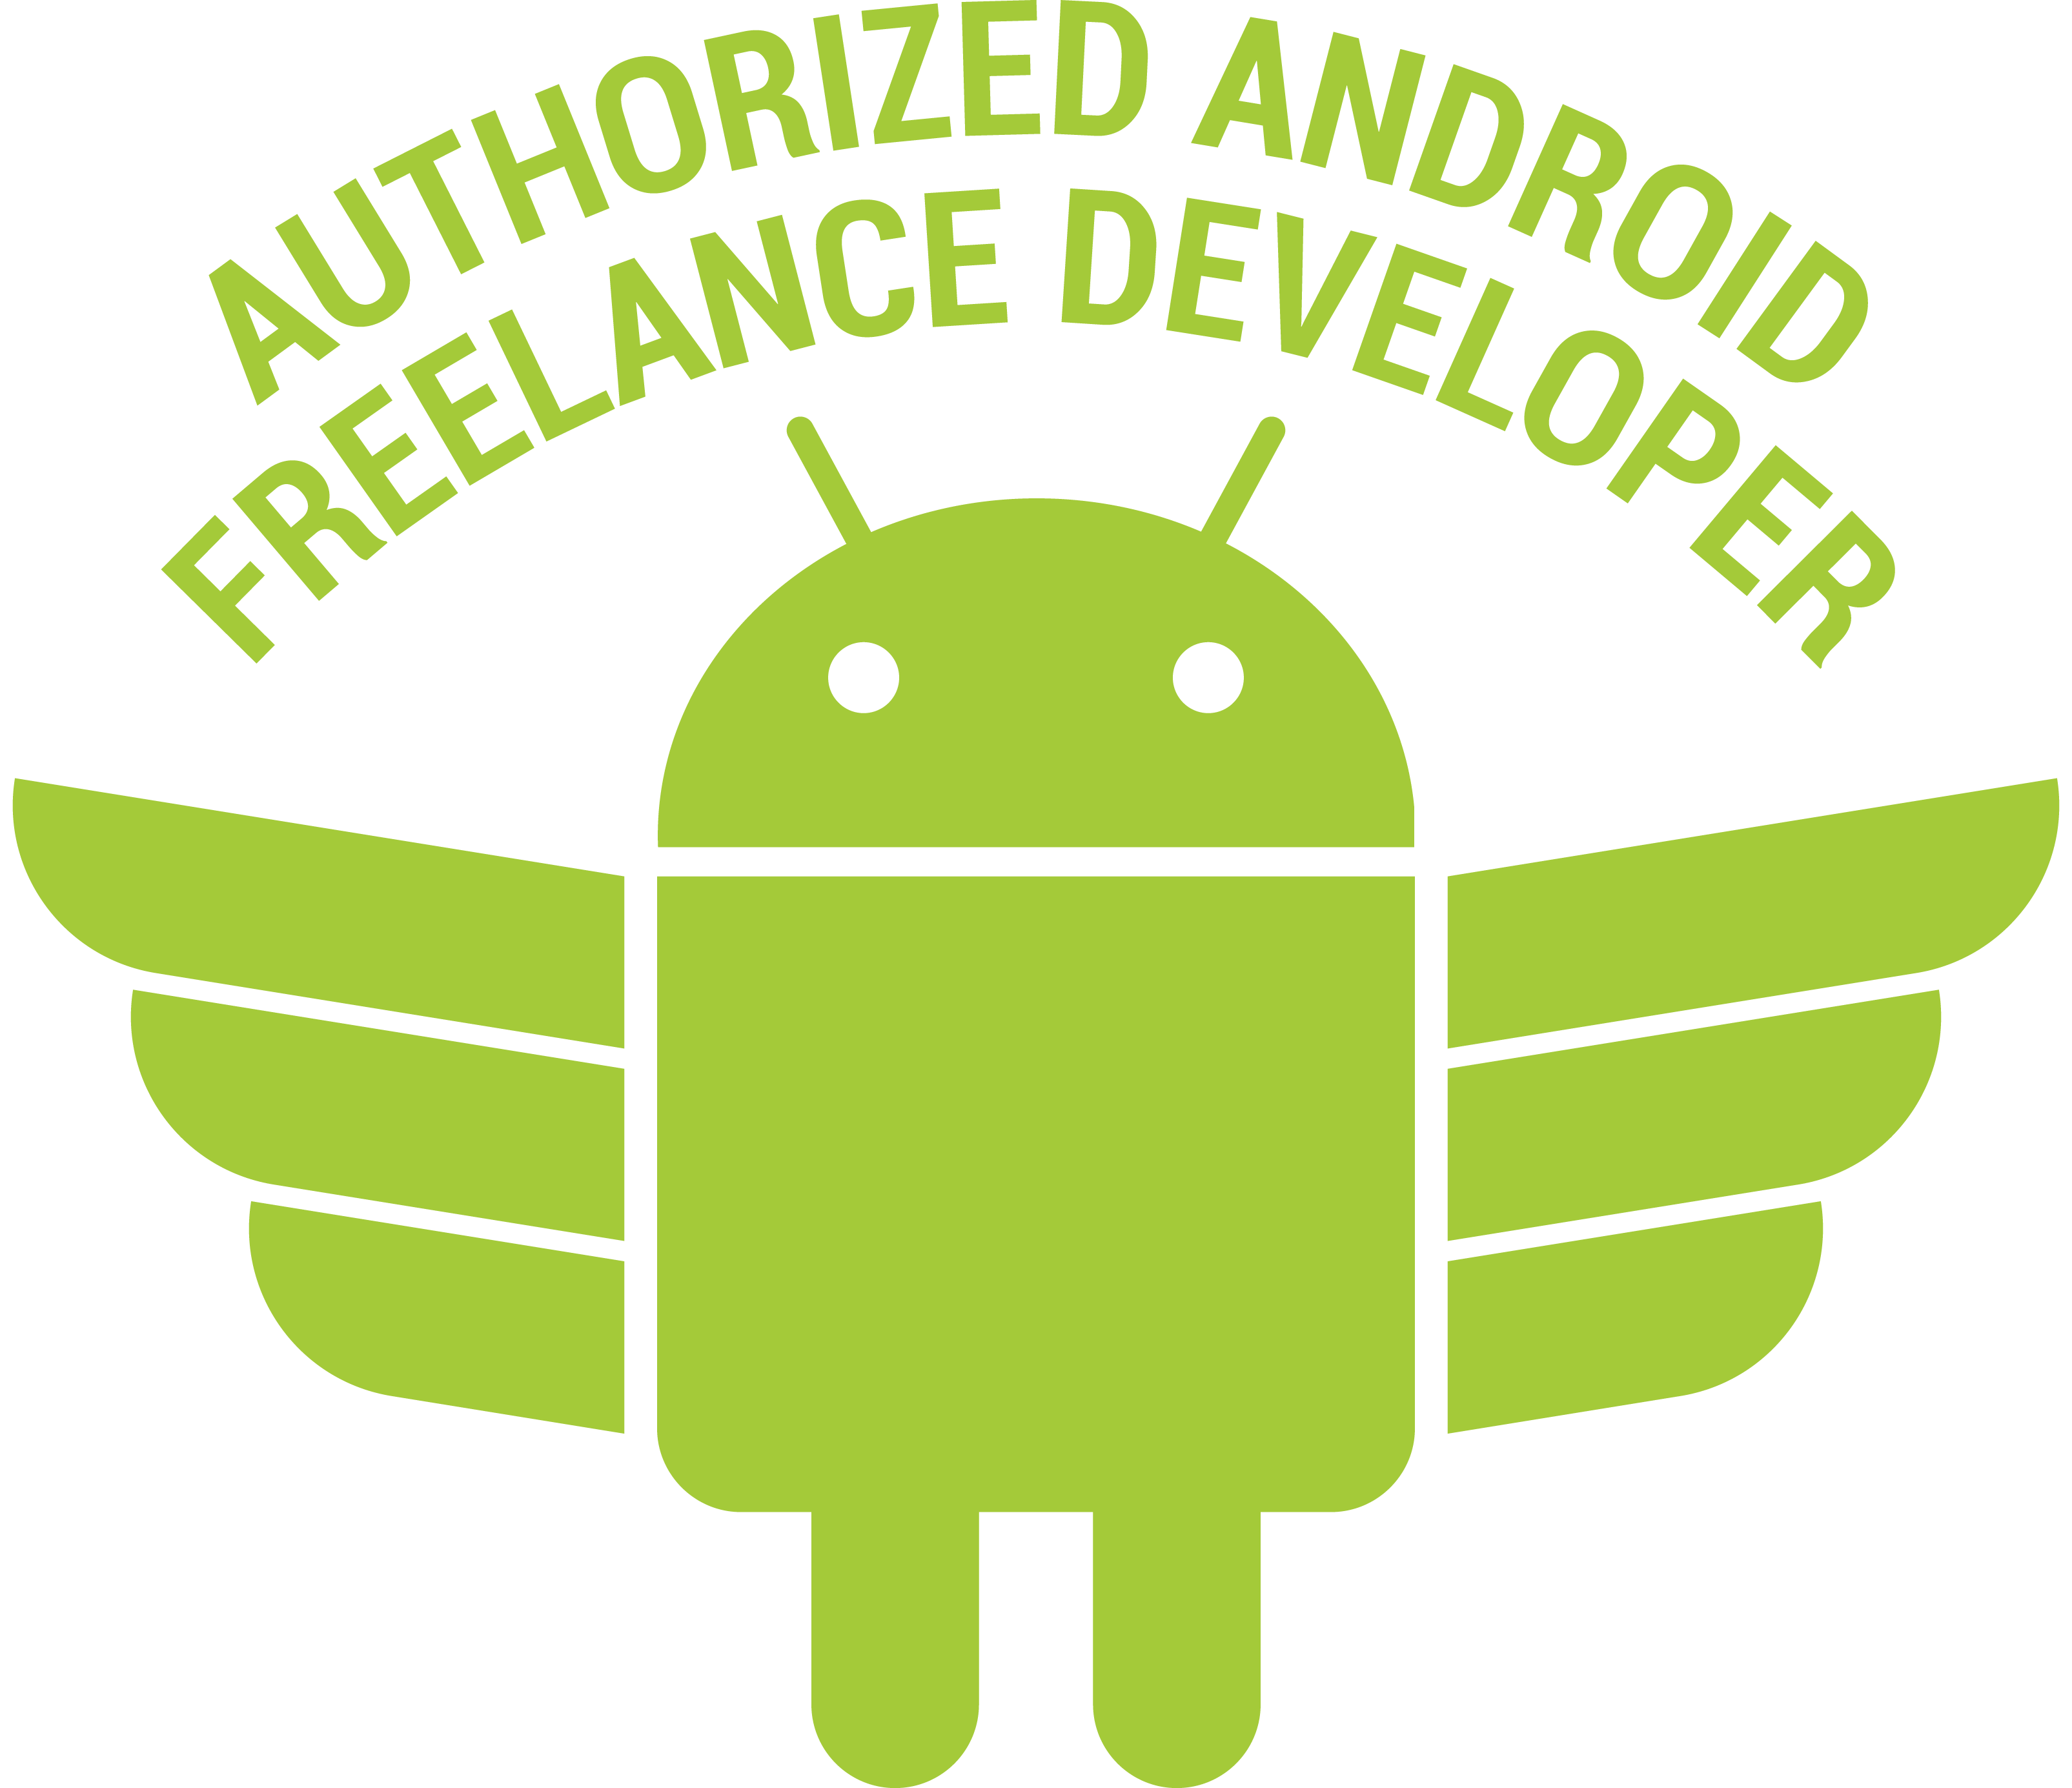 Android Freelance Developer Logo